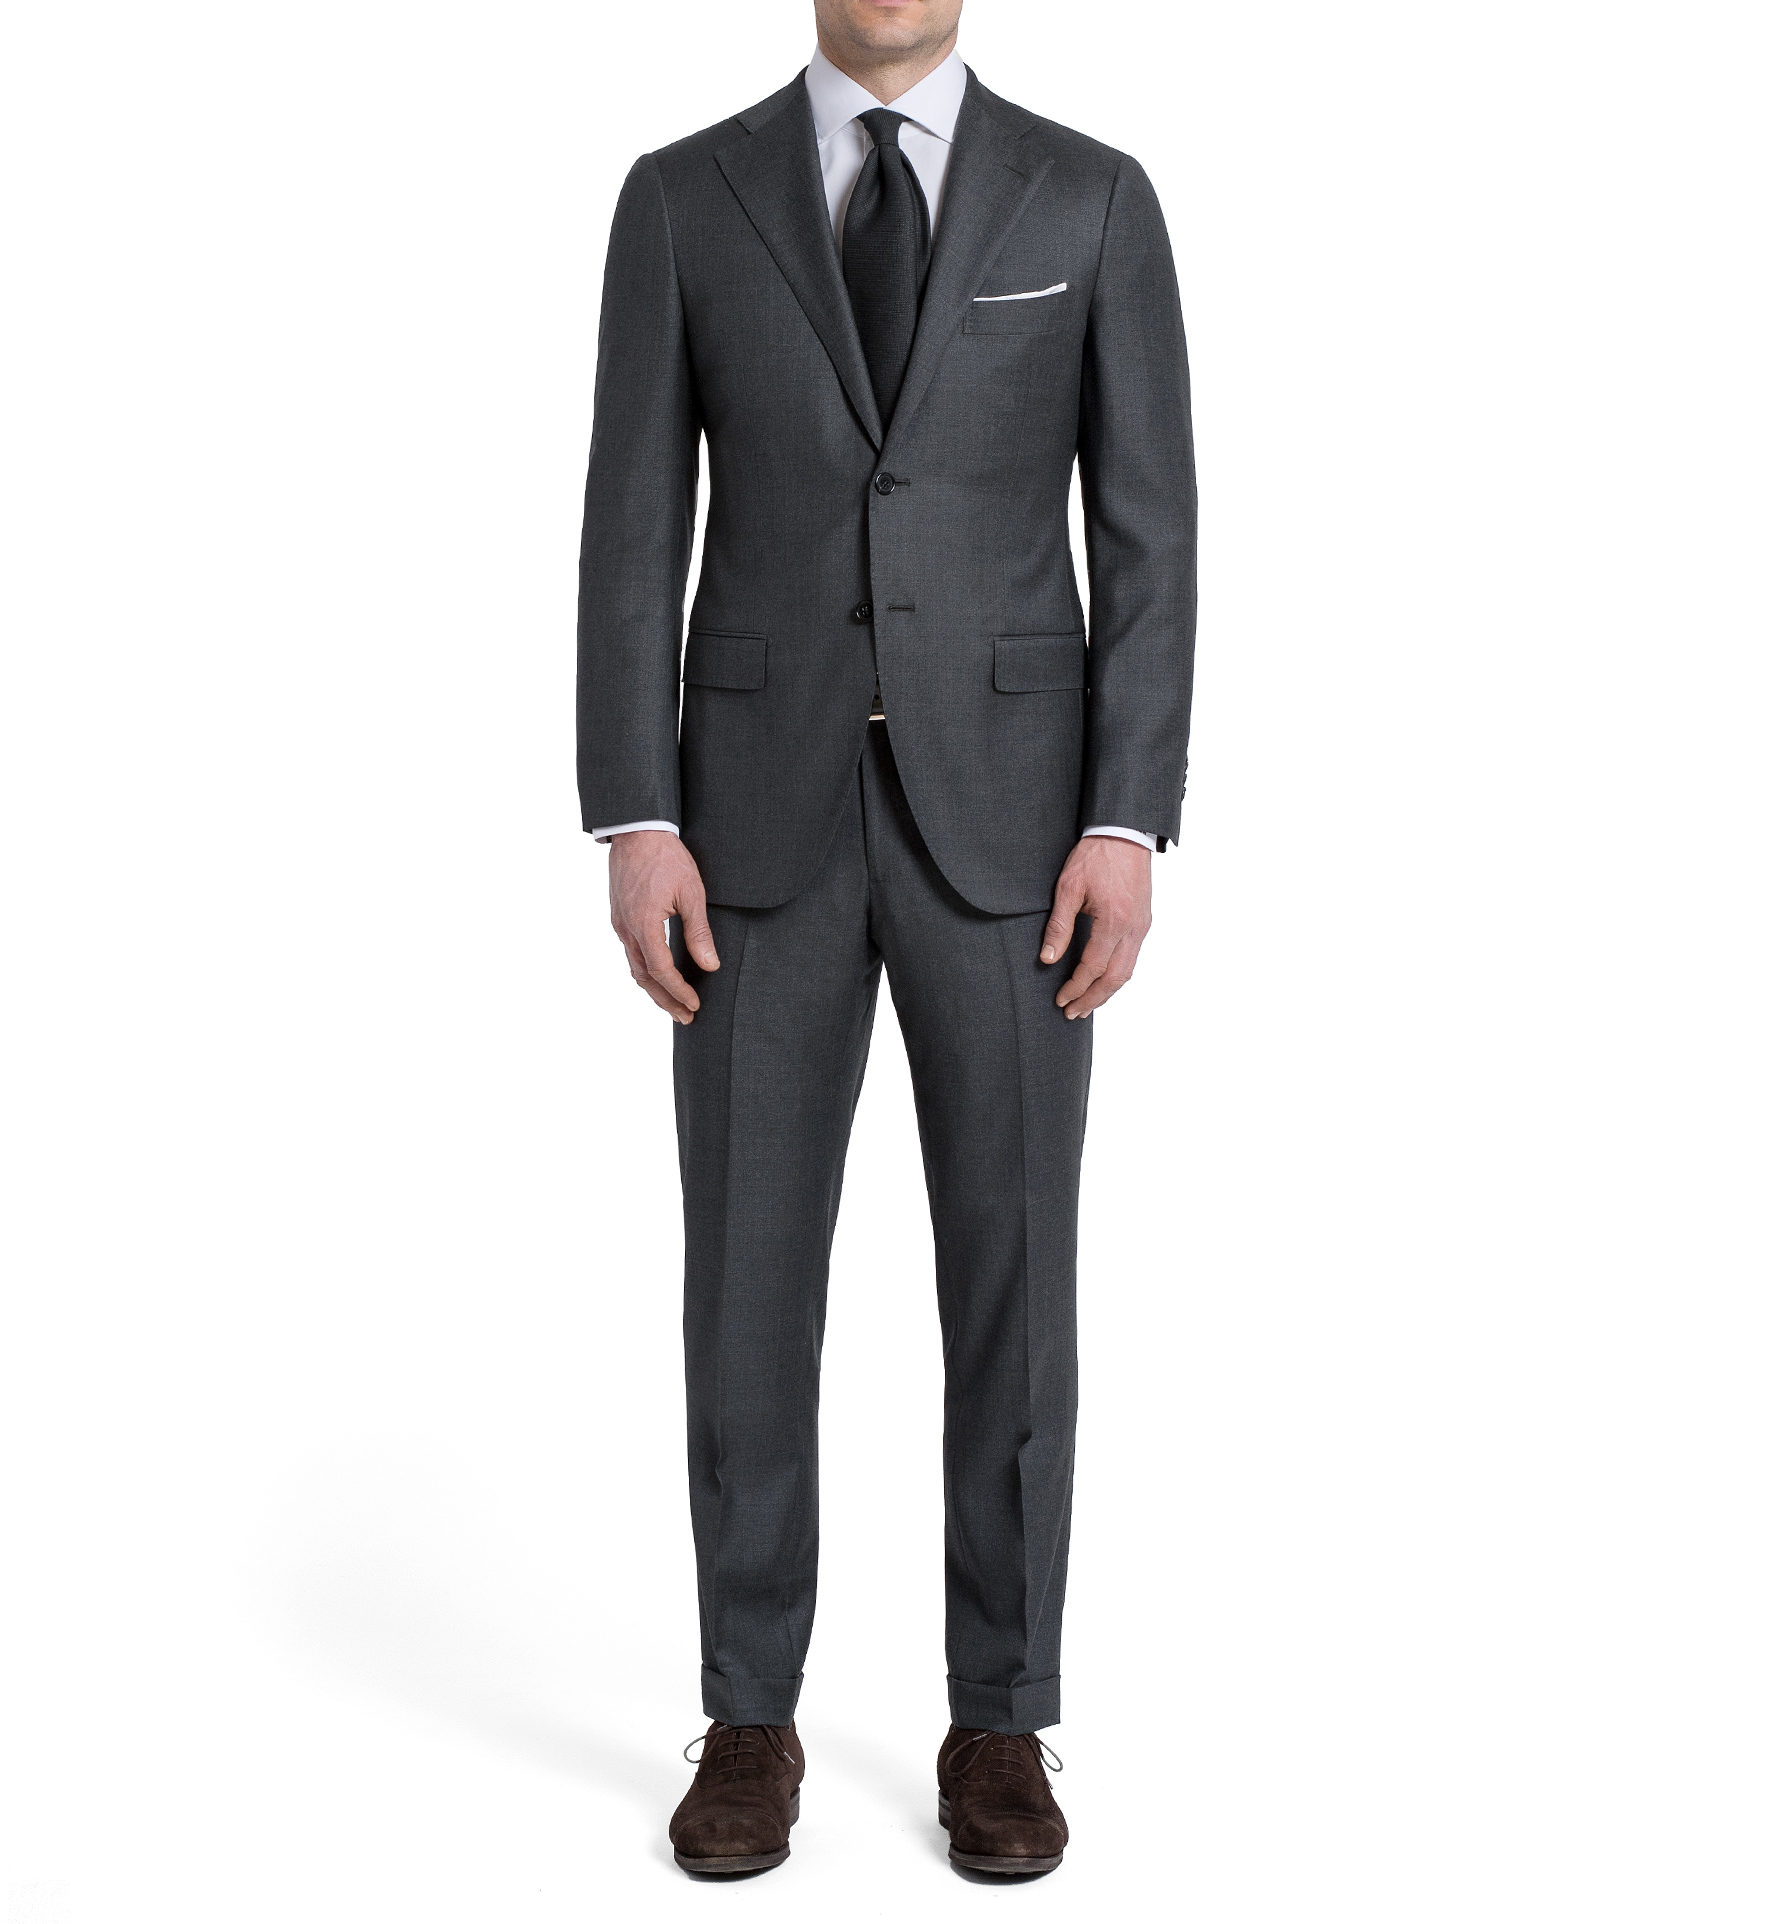 Zoom Image of Allen Grey S110s Wool Suit with Cuffed Trouser